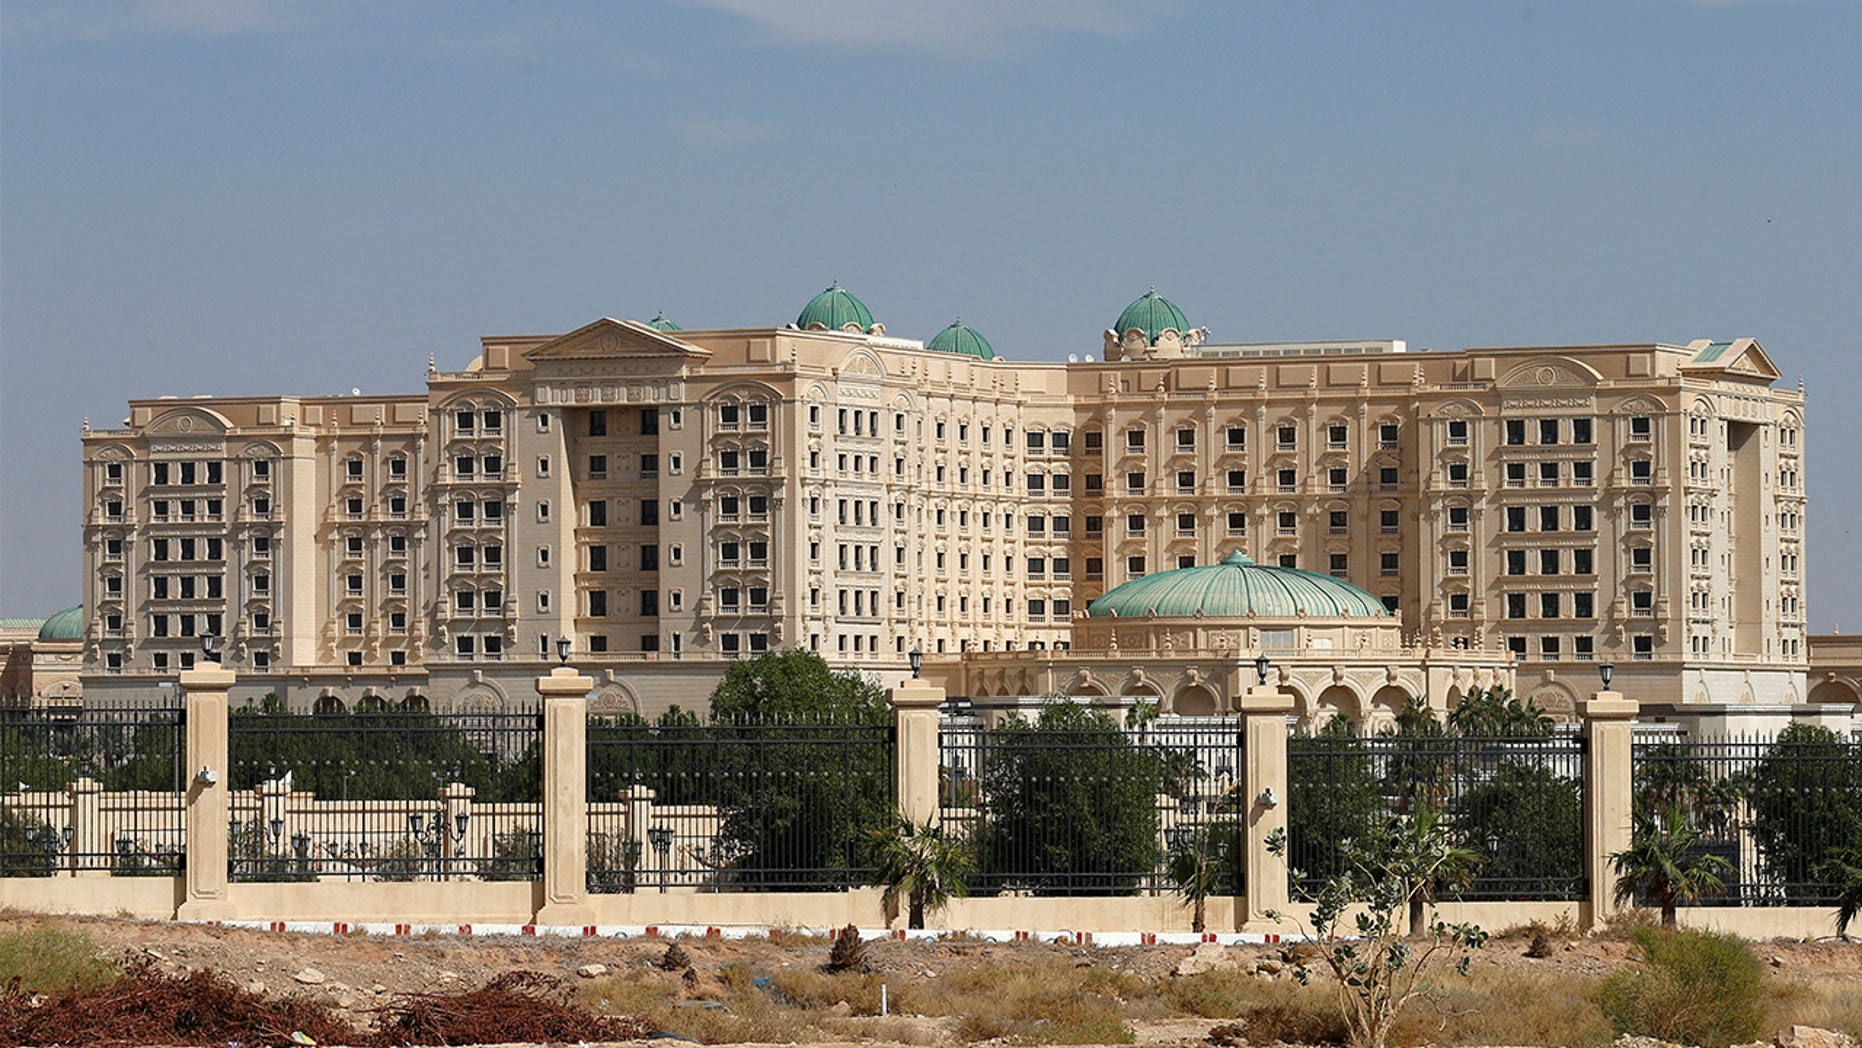 The Ritz-Carlton in Riyadh has been closed to guests since November, serving instead as a high-end prison for Saudi officials.